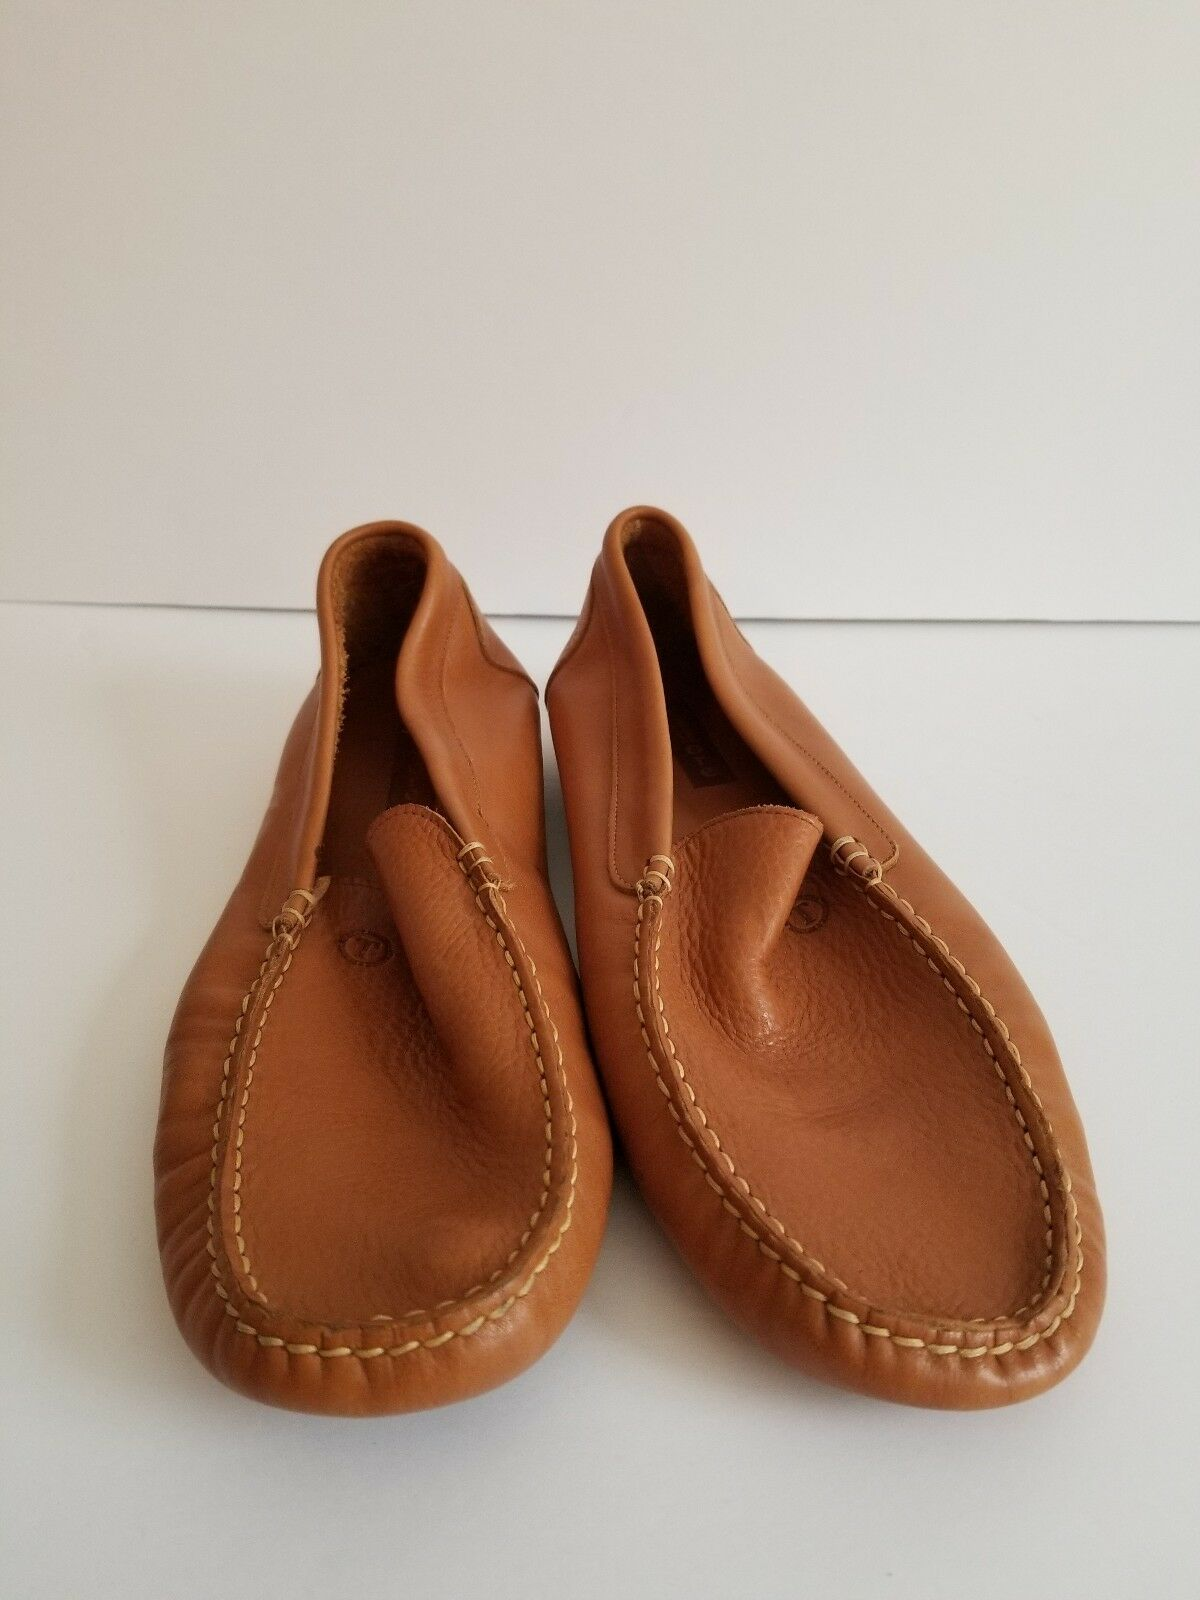 MENS TAGORE BROWN LEATHER LOAFERS SIZE 10.5